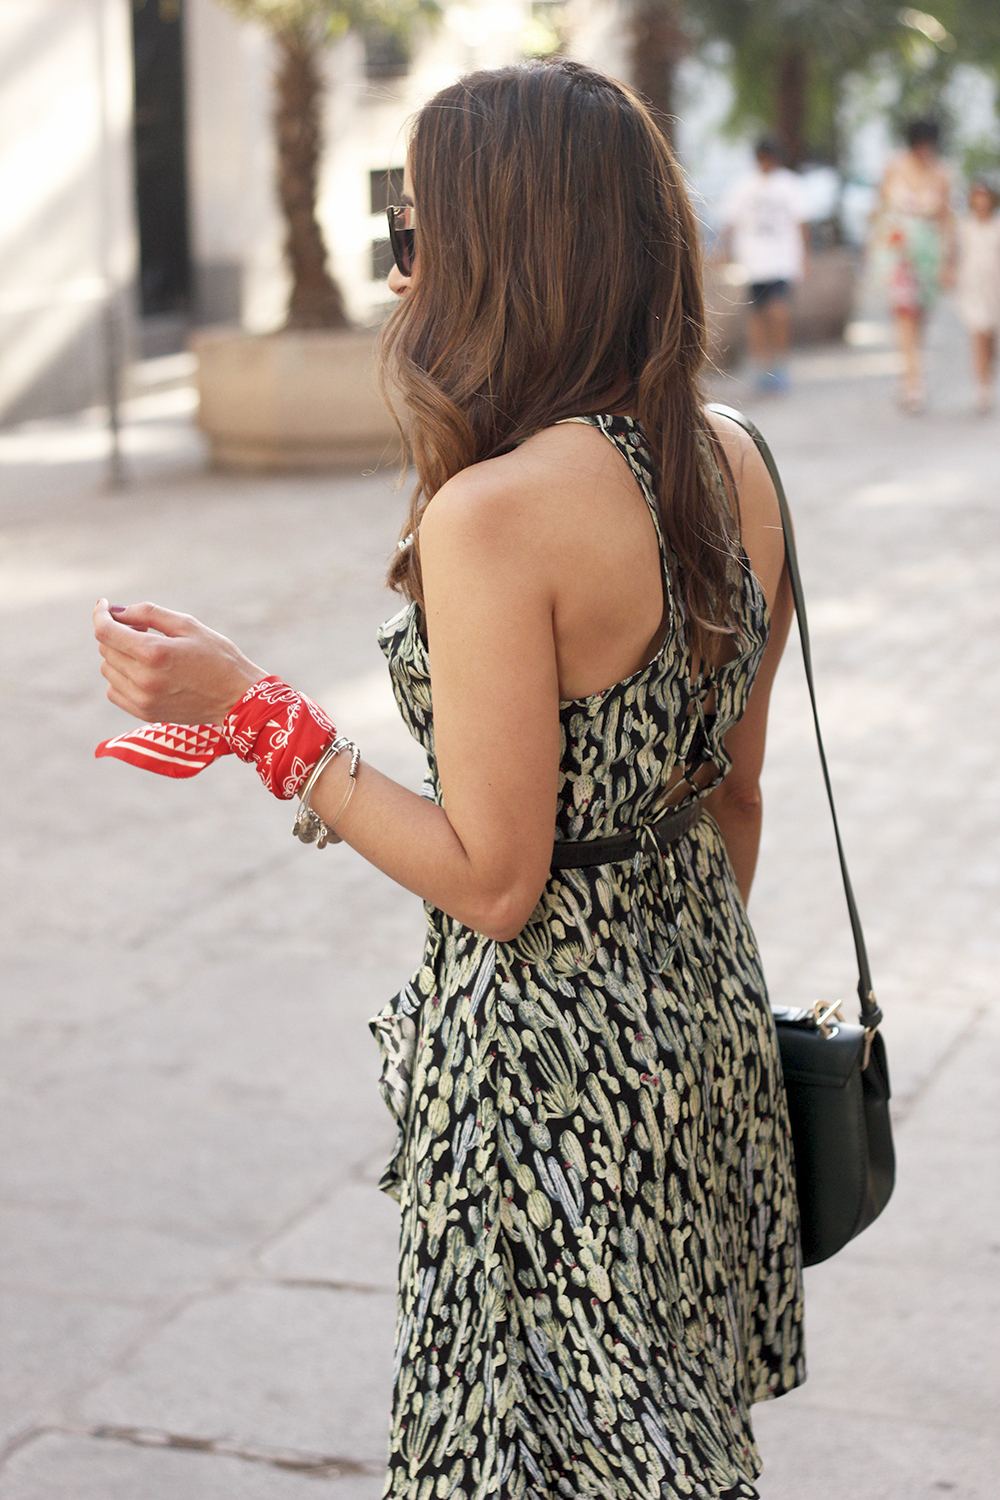 summer dress with cactus prints black sandals sunnies outfit style 04